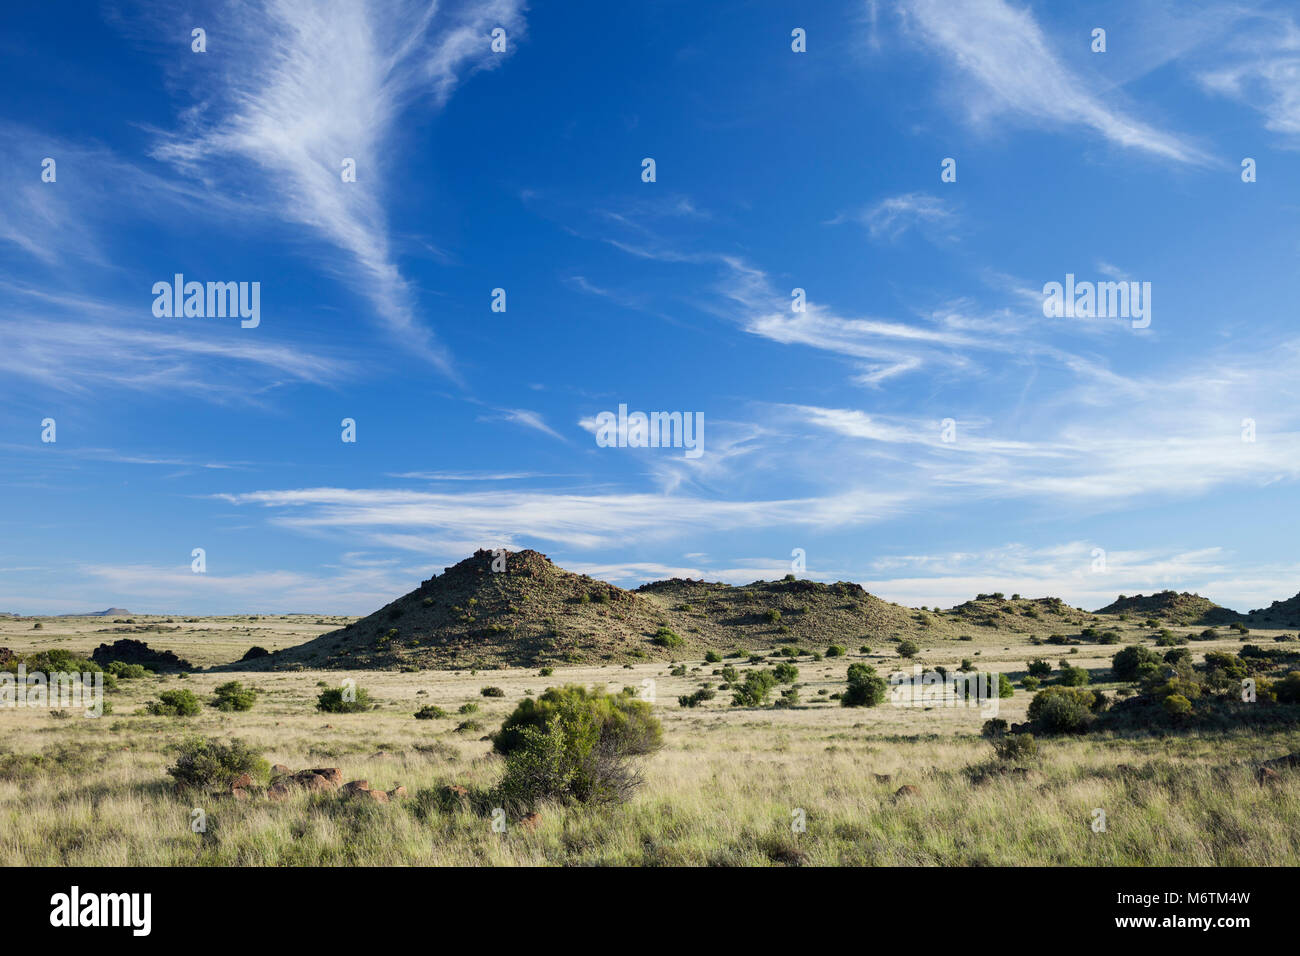 Koppies and grassy plains that are characteristic of the Karoo. - Stock Image